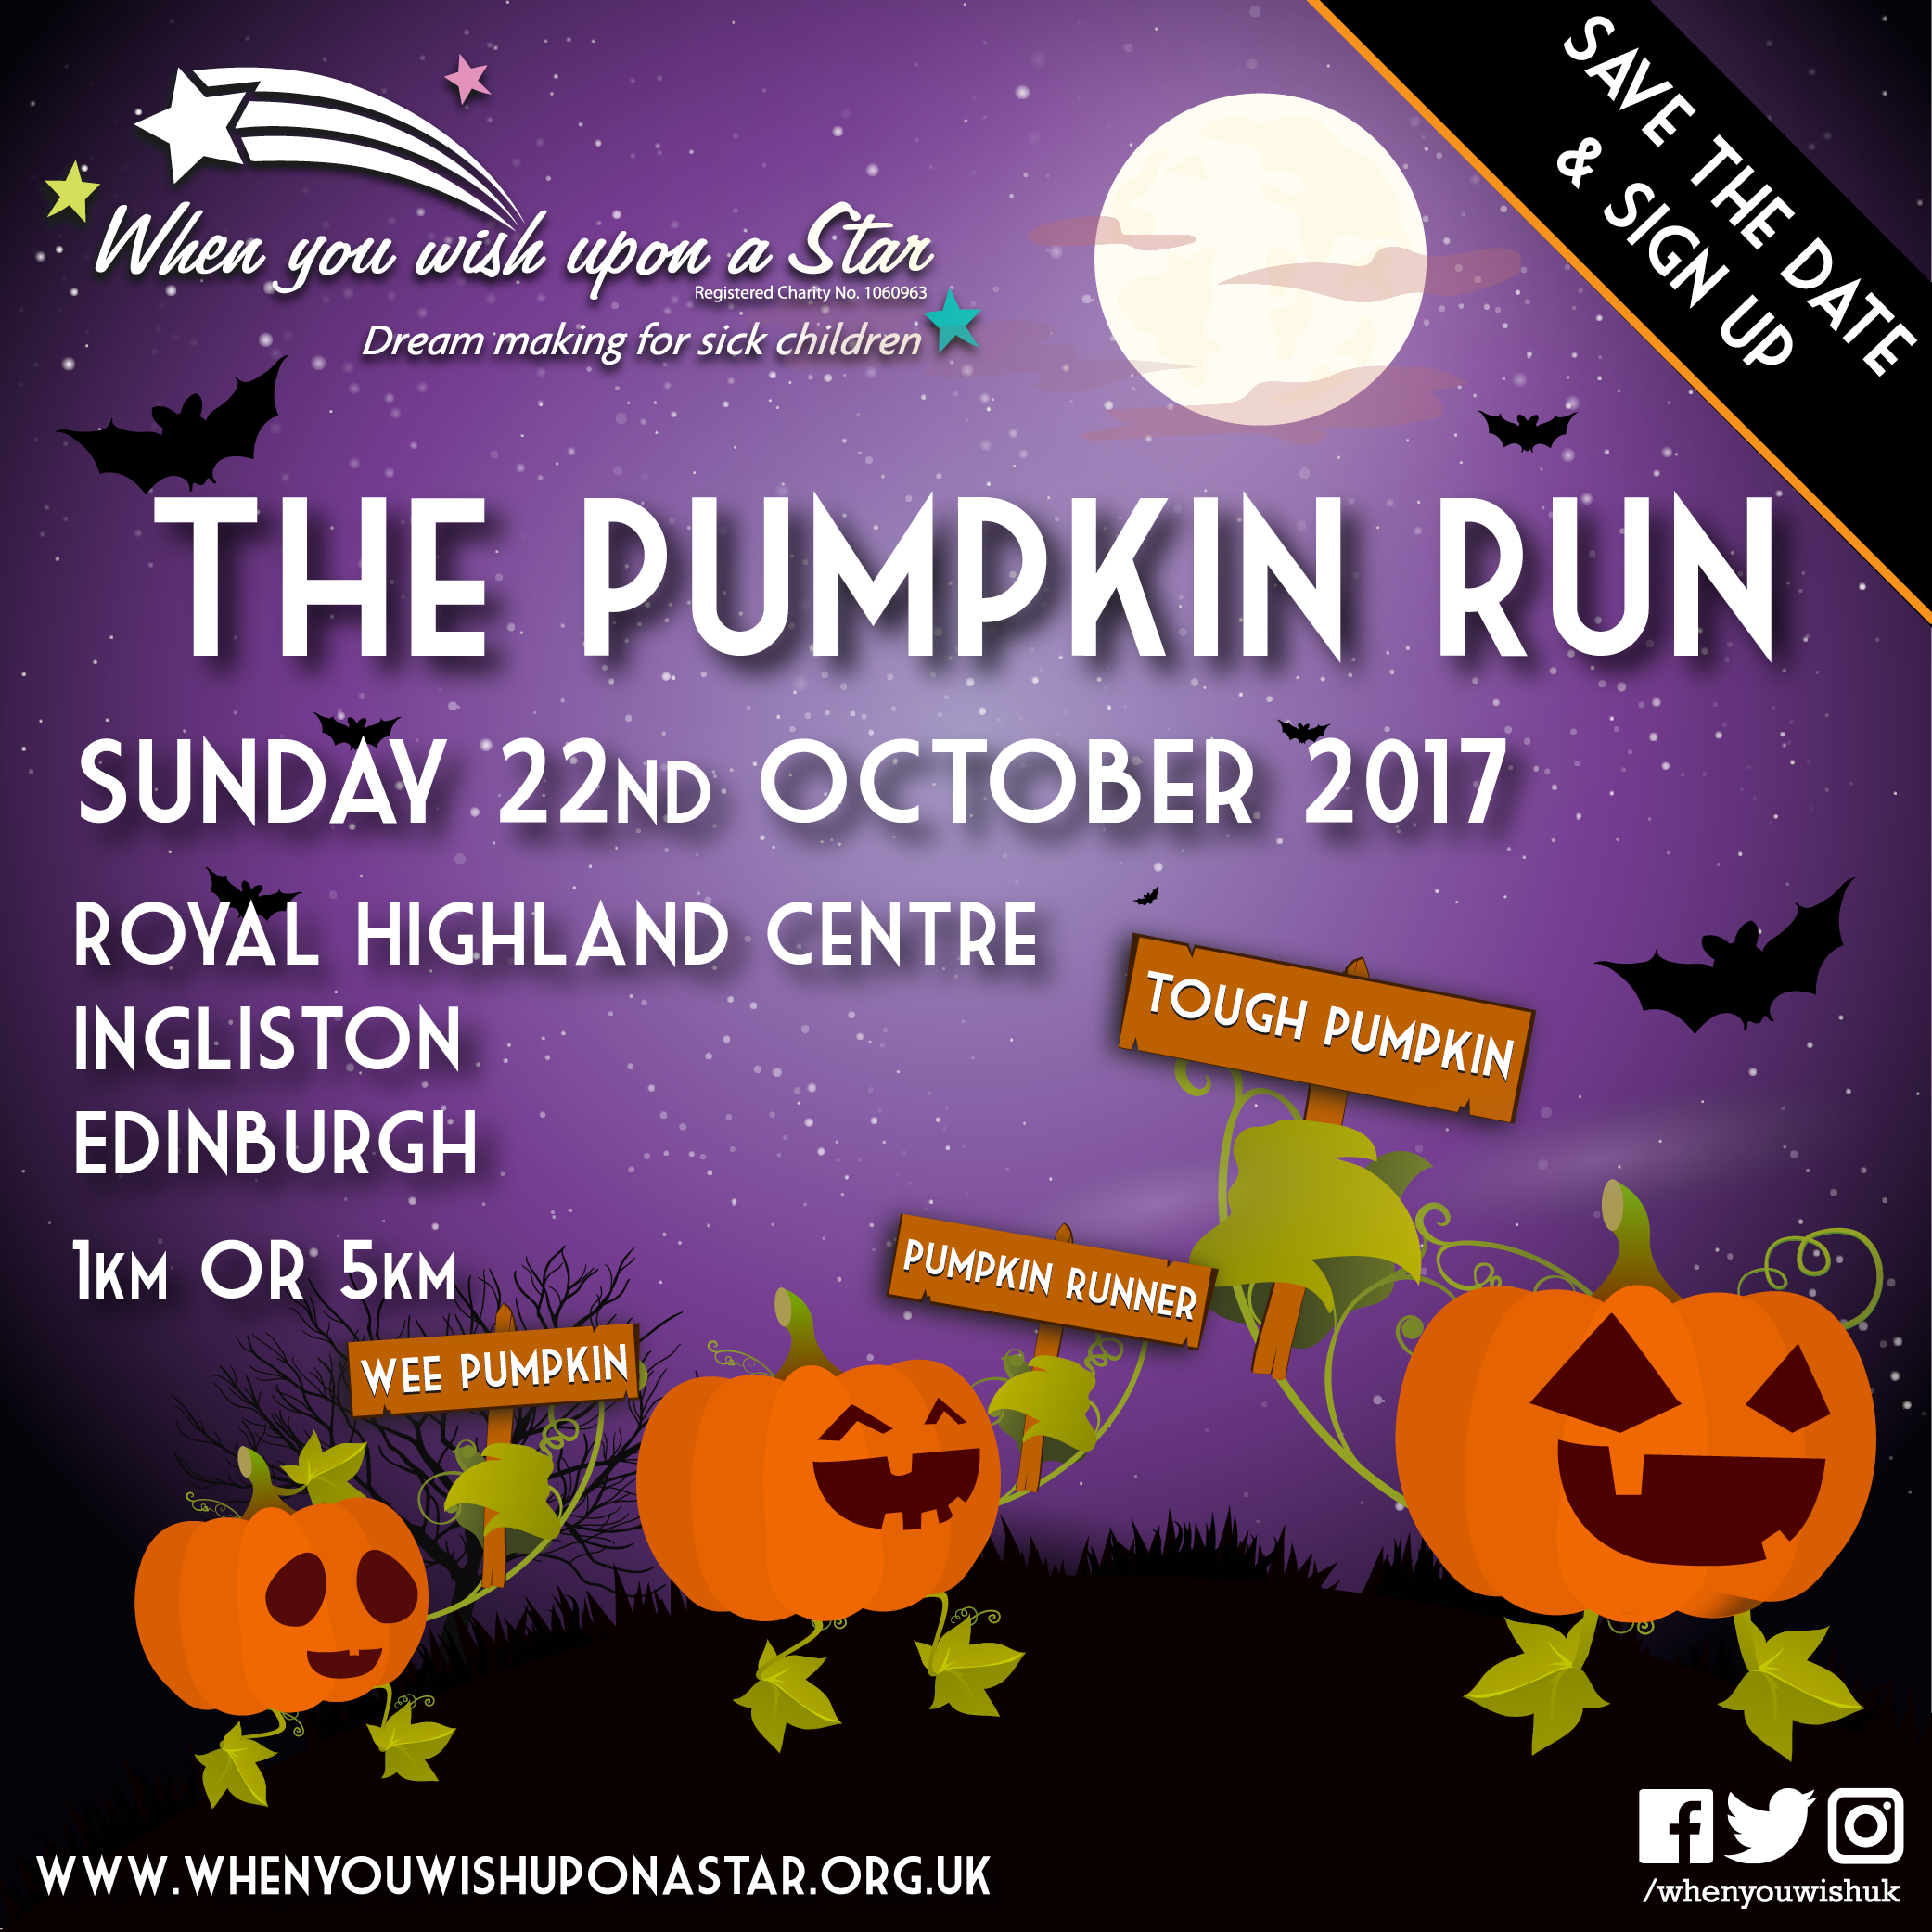 PumpkinRun 2017 save the date